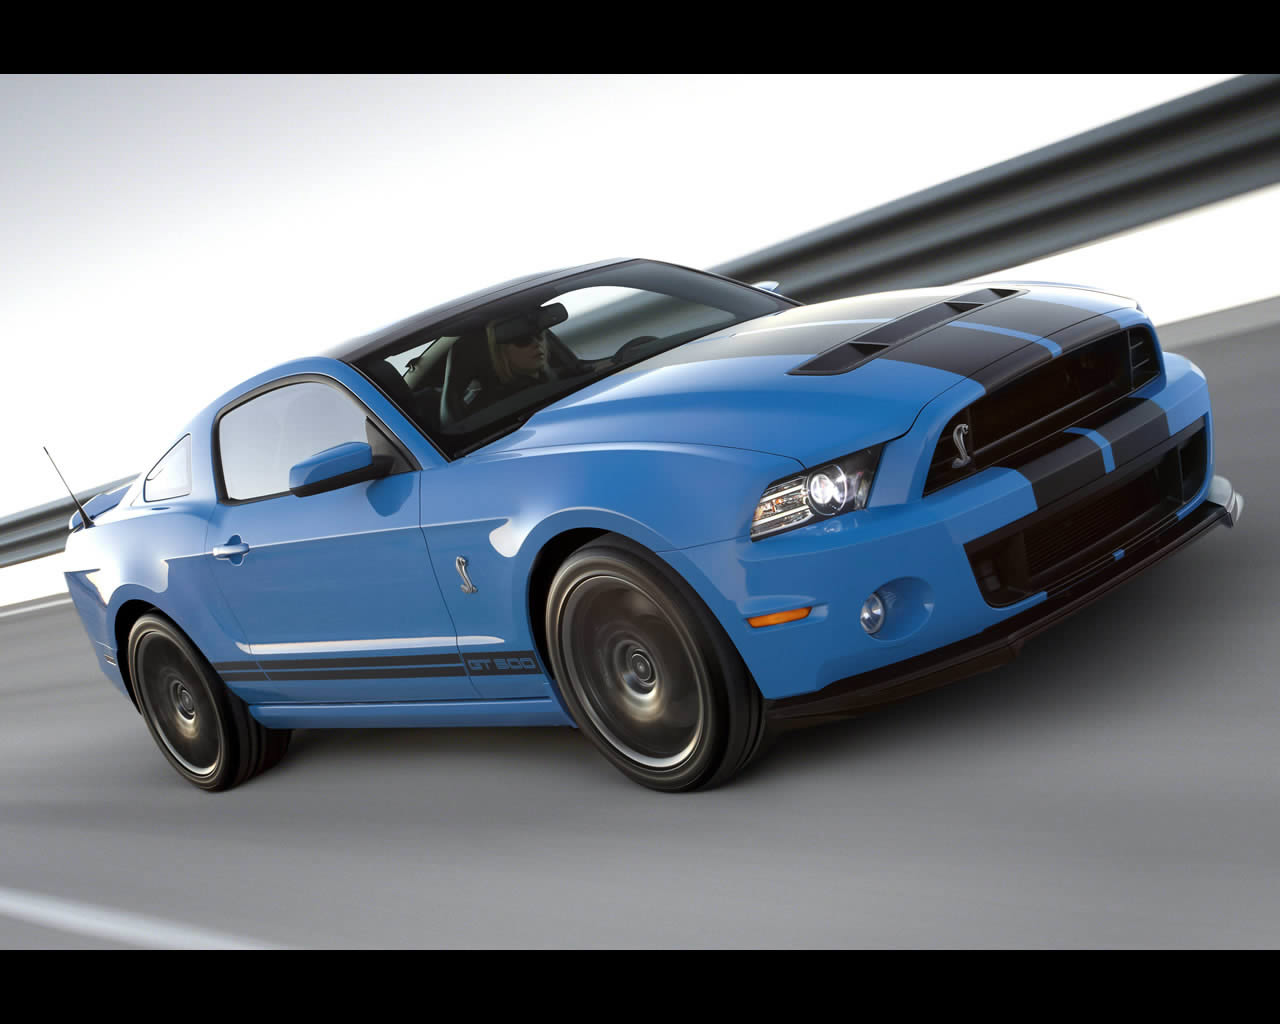 ford mustang shelby gt500 v8 supercharged 2013. Black Bedroom Furniture Sets. Home Design Ideas